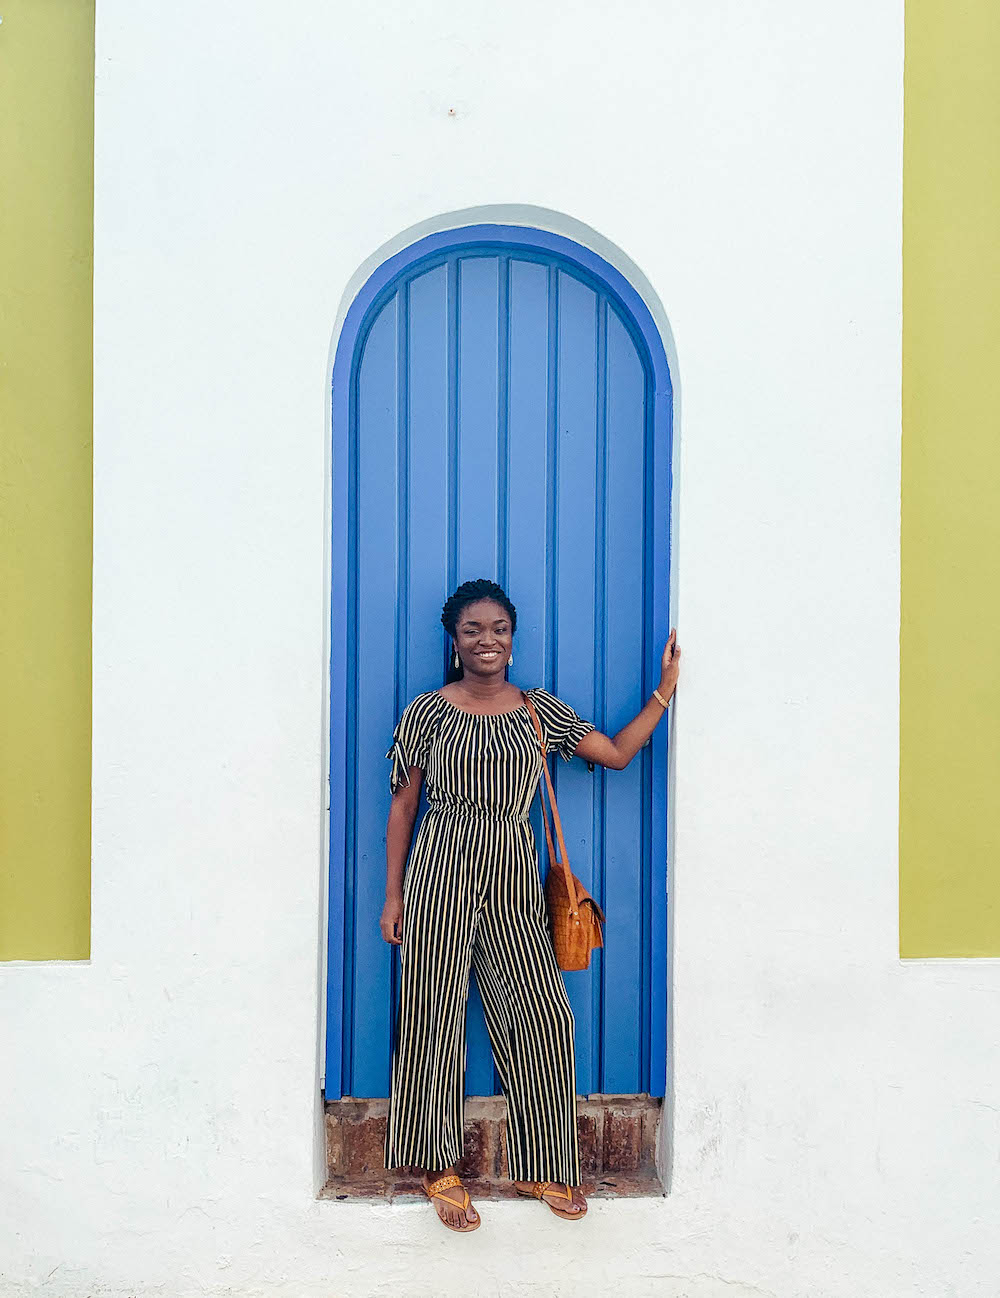 Standing by a door in Old San Juan